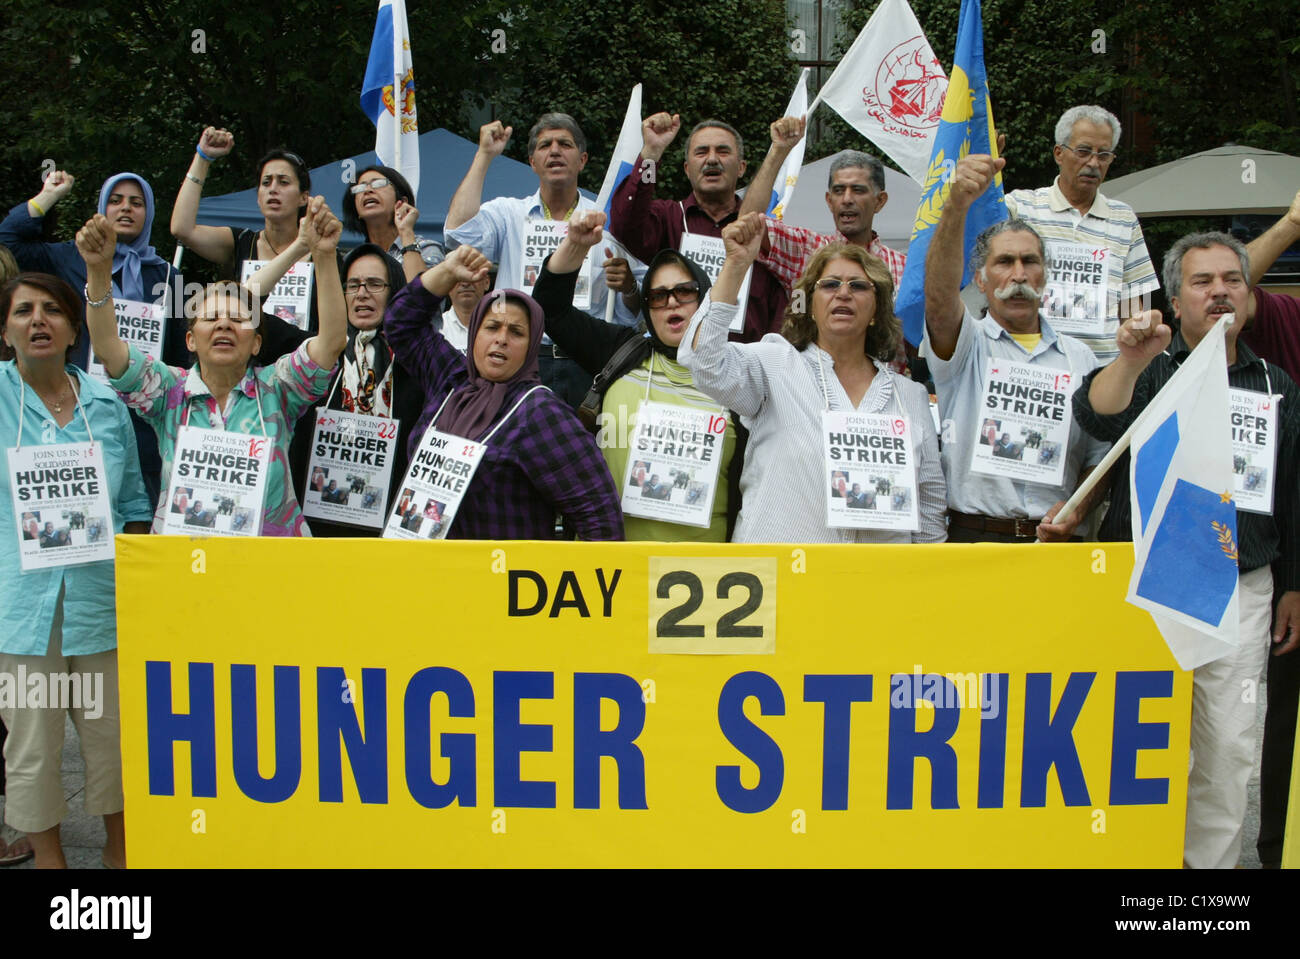 Day 22 of a hunger strike by Iranian Americans who are protesting against the alleged killing of Iranian refugees Stock Photo